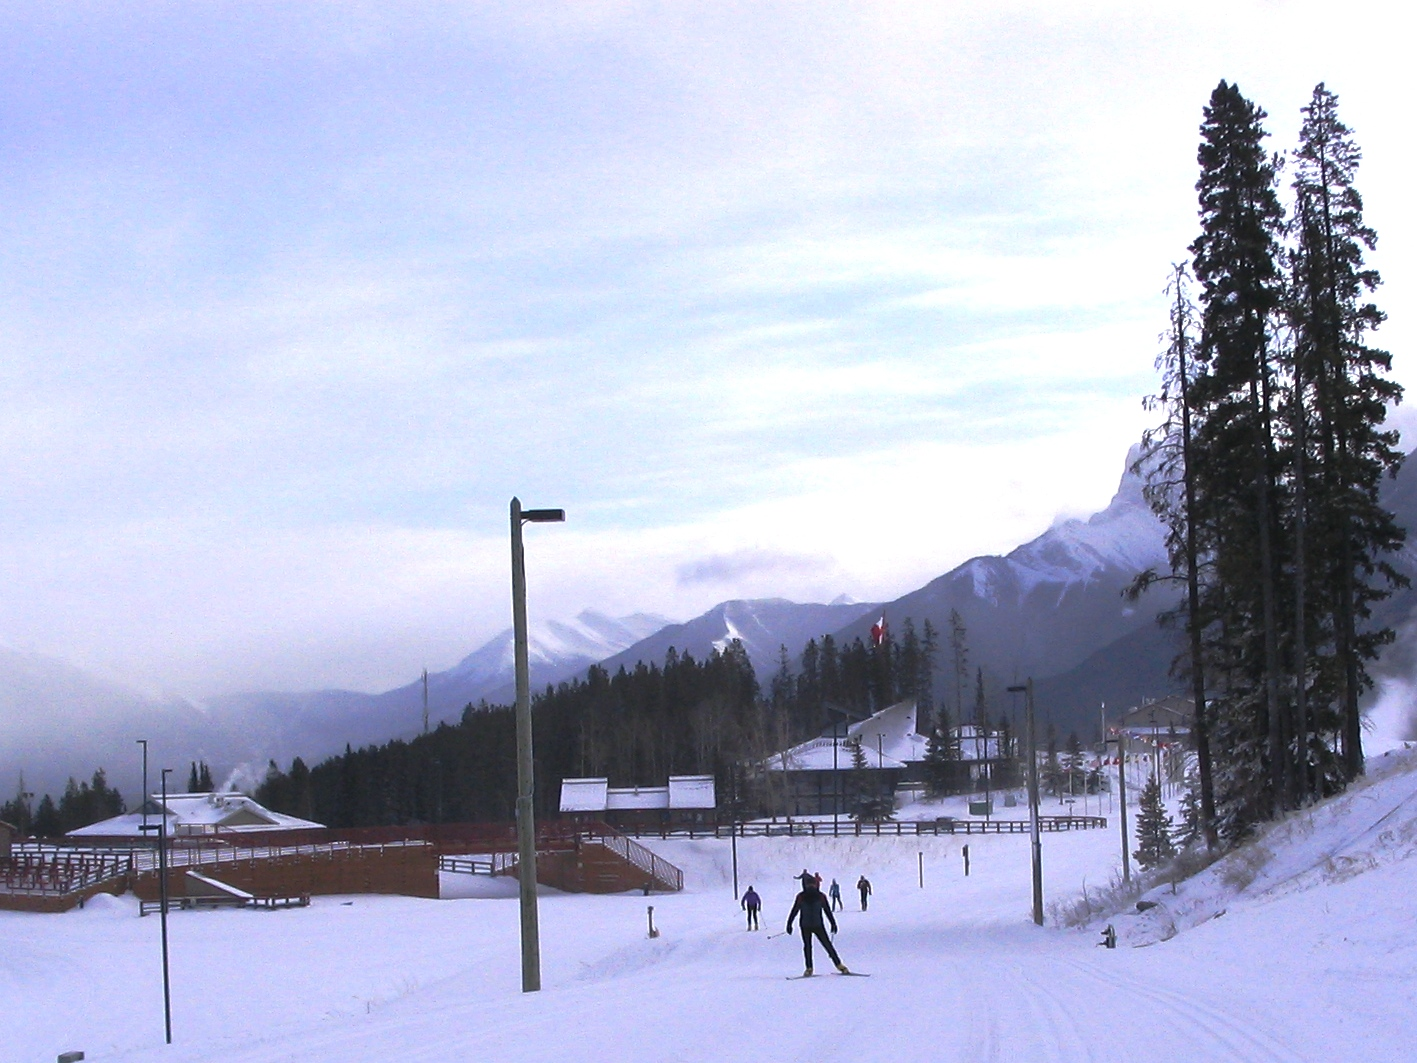 Skiers at Canmore Nordic Centre  Dec 13, 2008